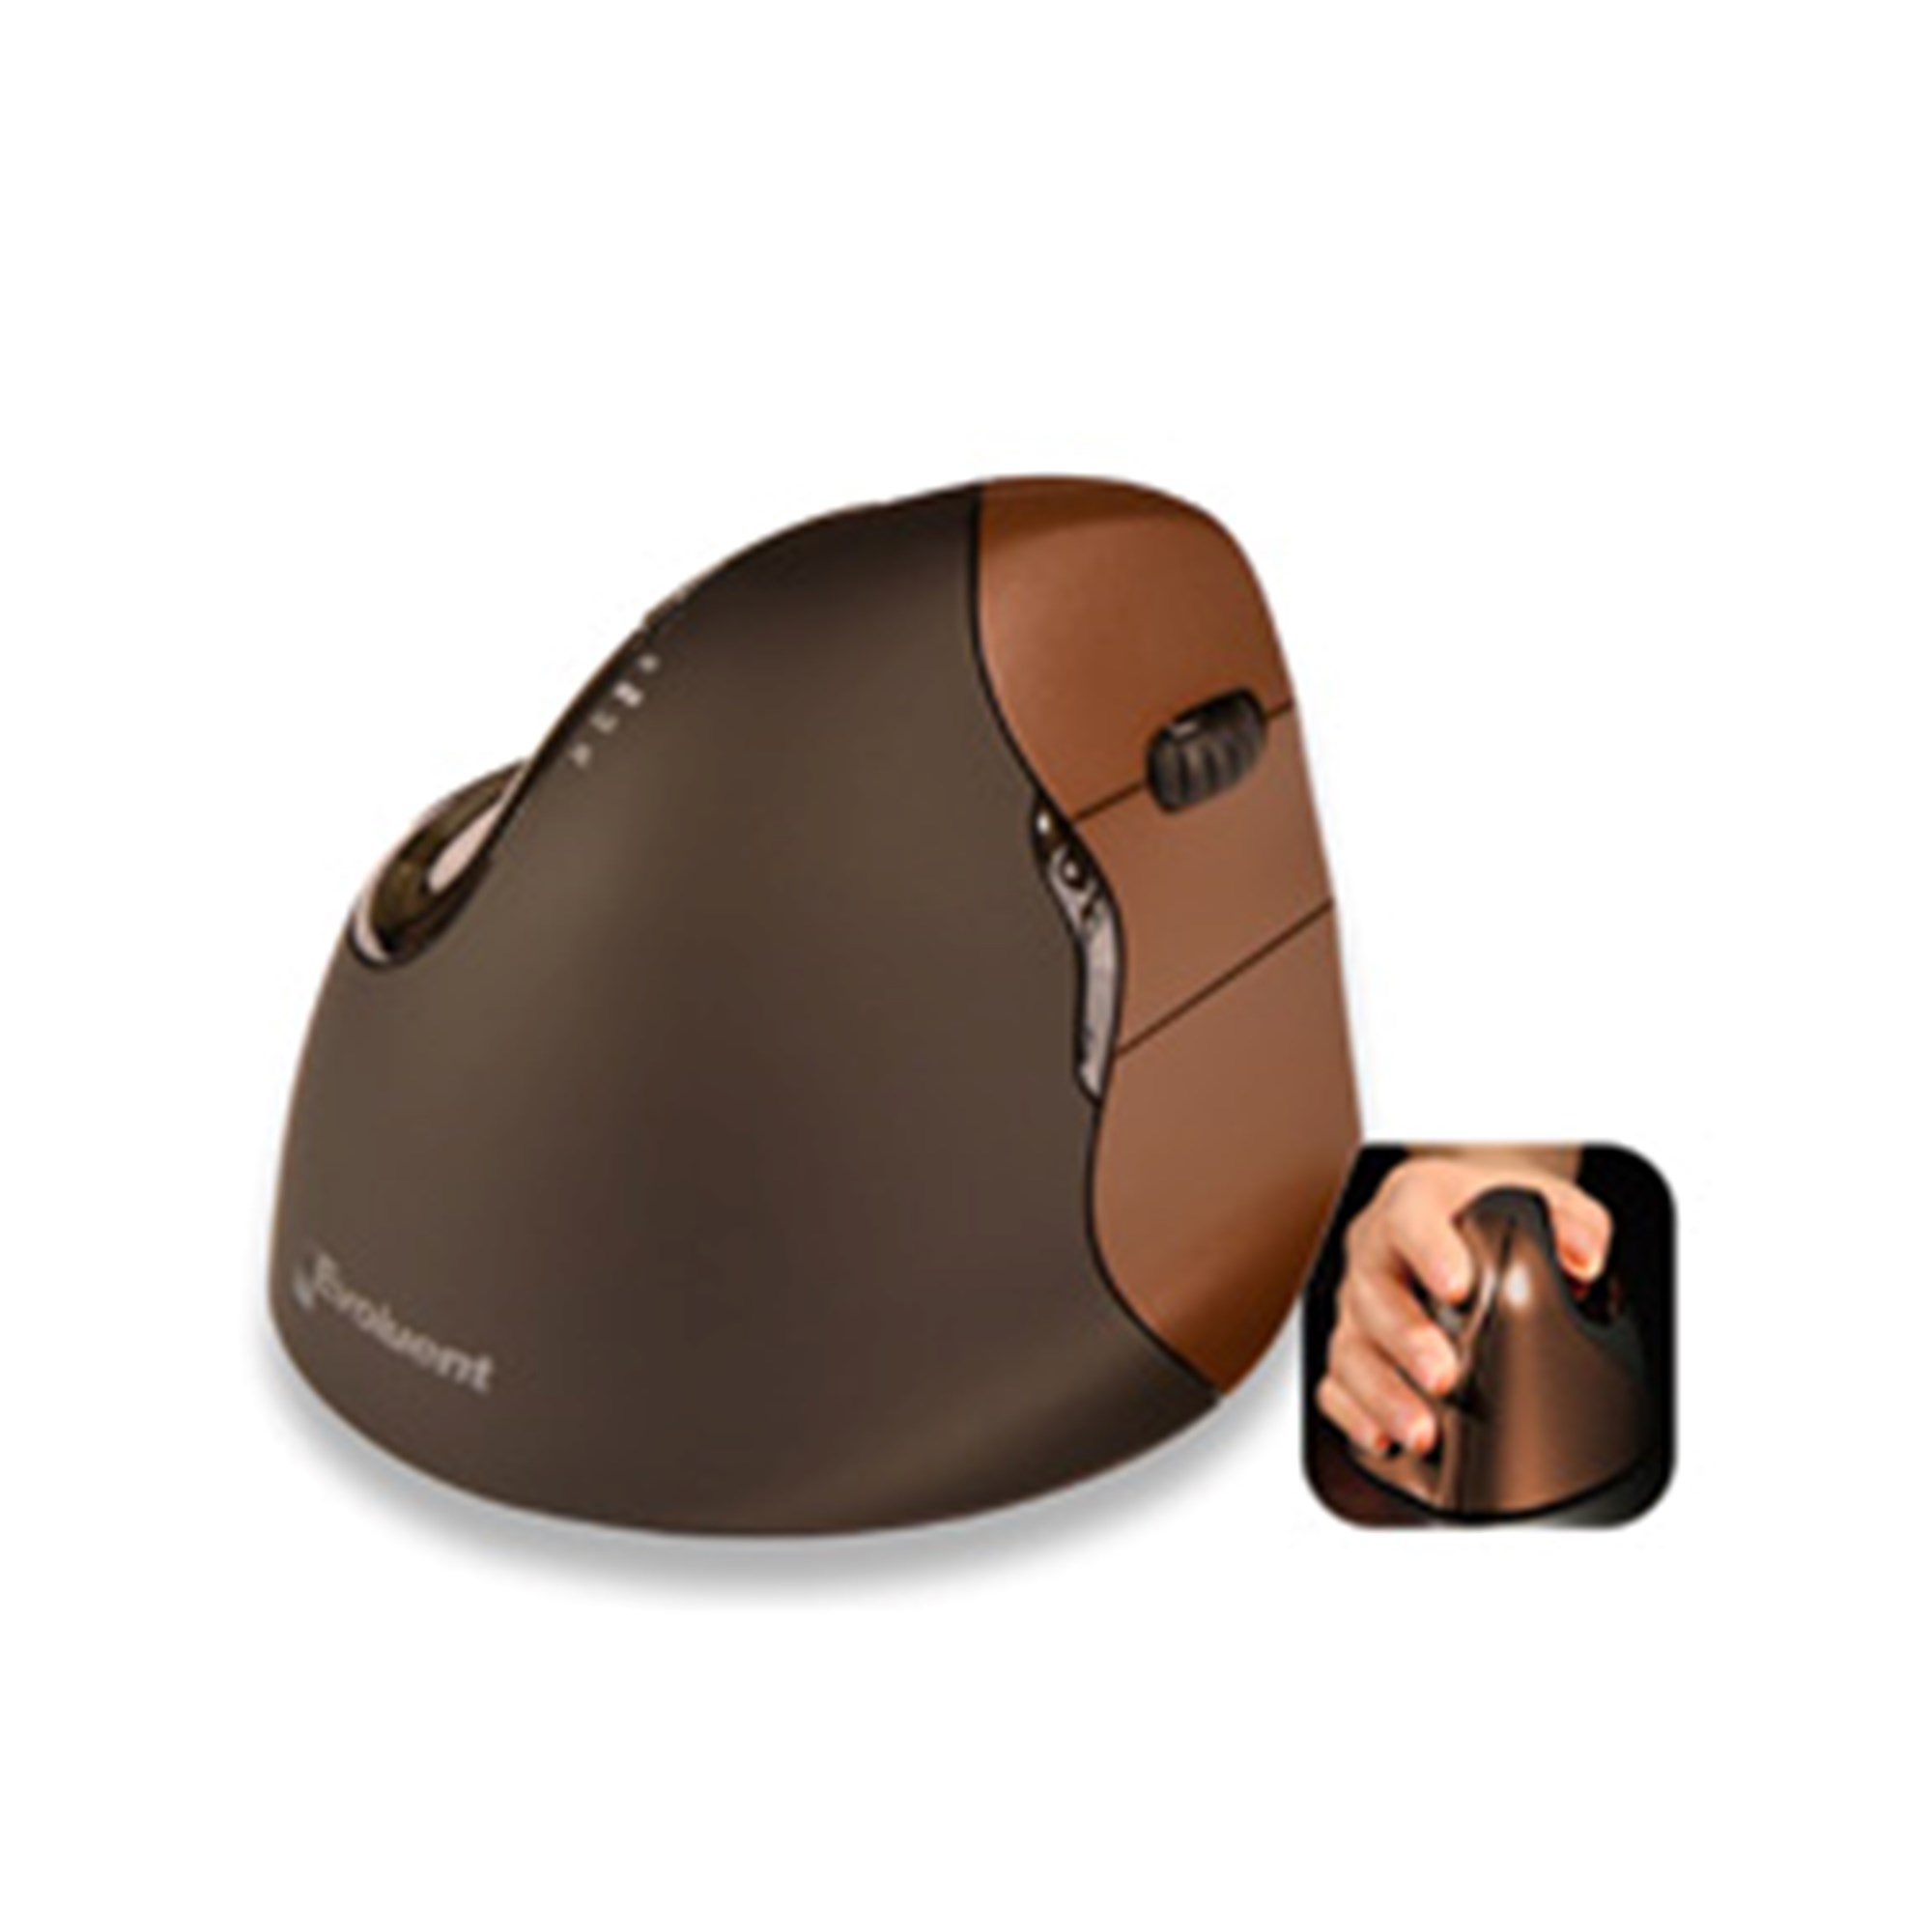 Image of   Evoluent VerticalMouse 4wirelessright hand small